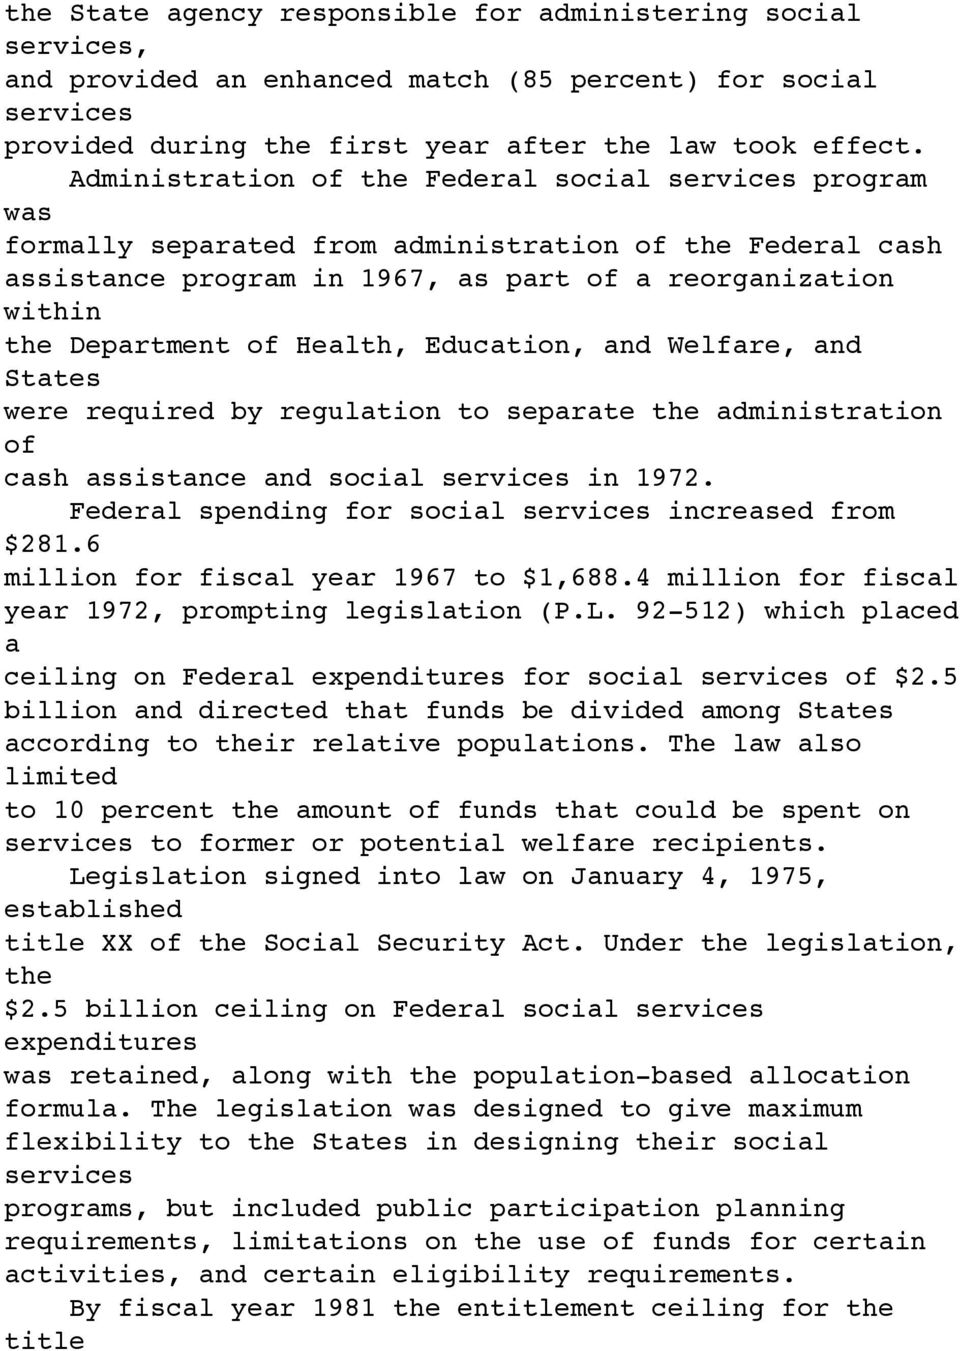 Health, Education, and Welfare, and States were required by regulation to separate the administration of cash assistance and social services in 1972.